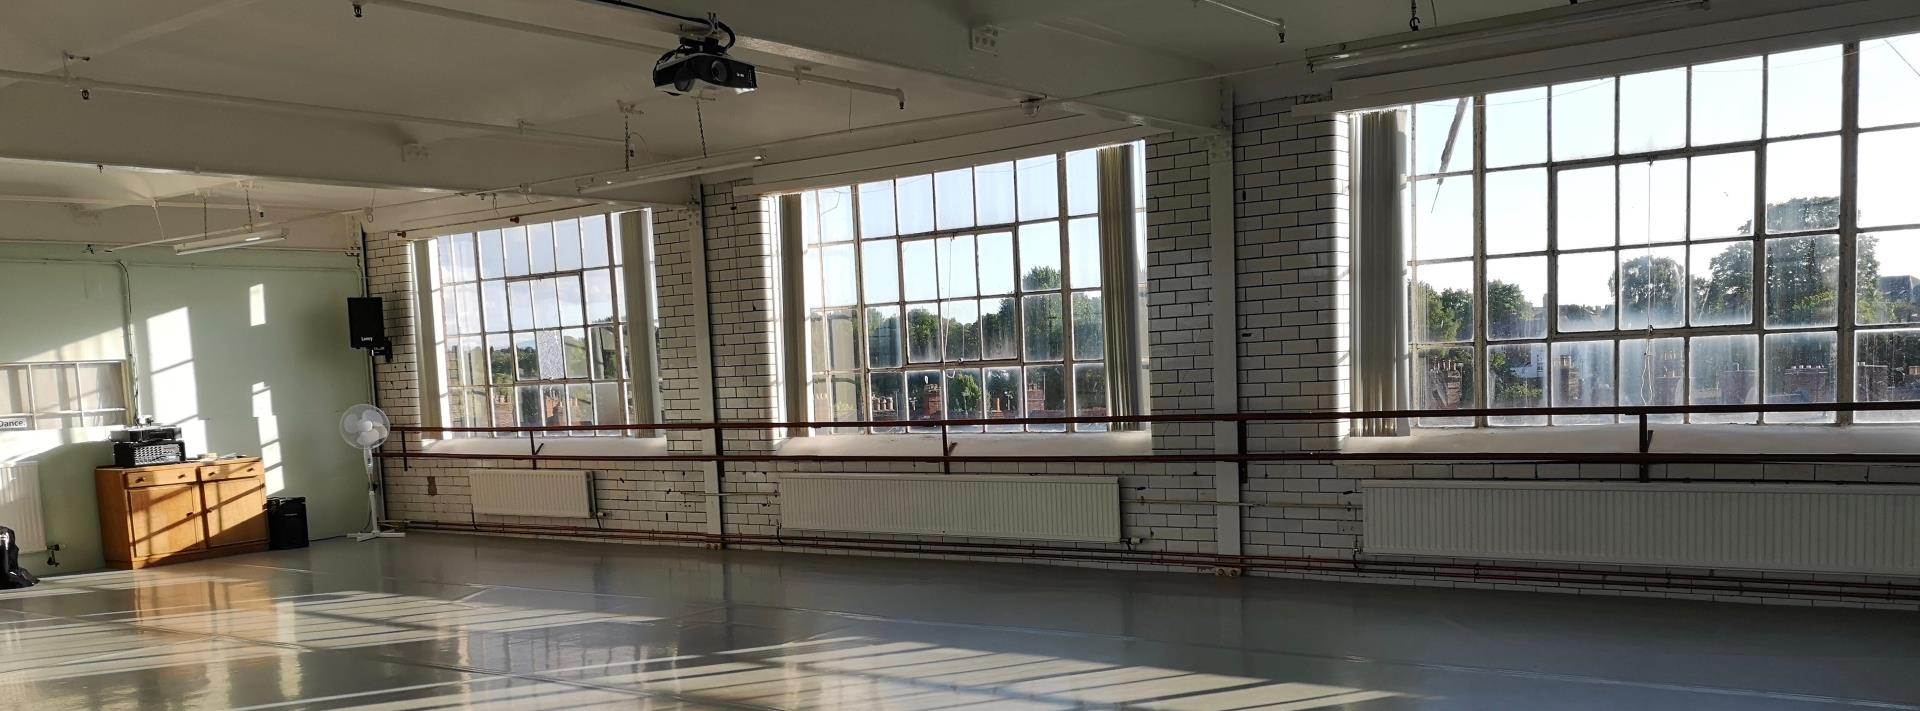 Accredited, Professional Ballet Lessons in Carlisle, Cumbria from Cumbria Ballet